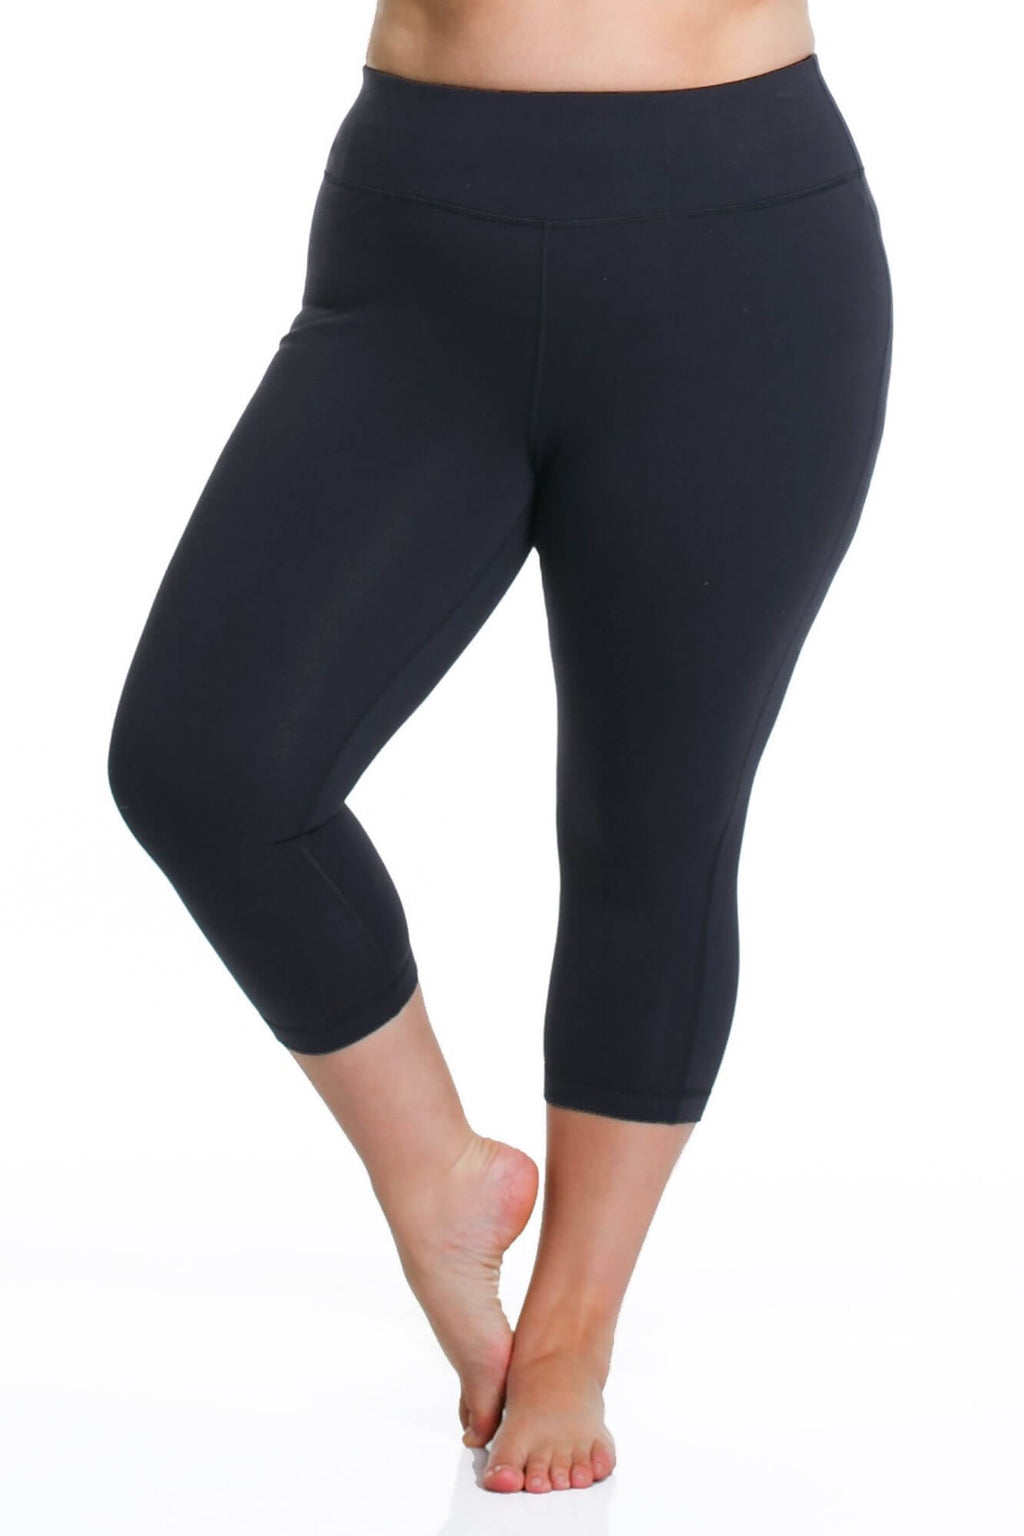 Model is shown from the waist down wearing black capri length leggings.